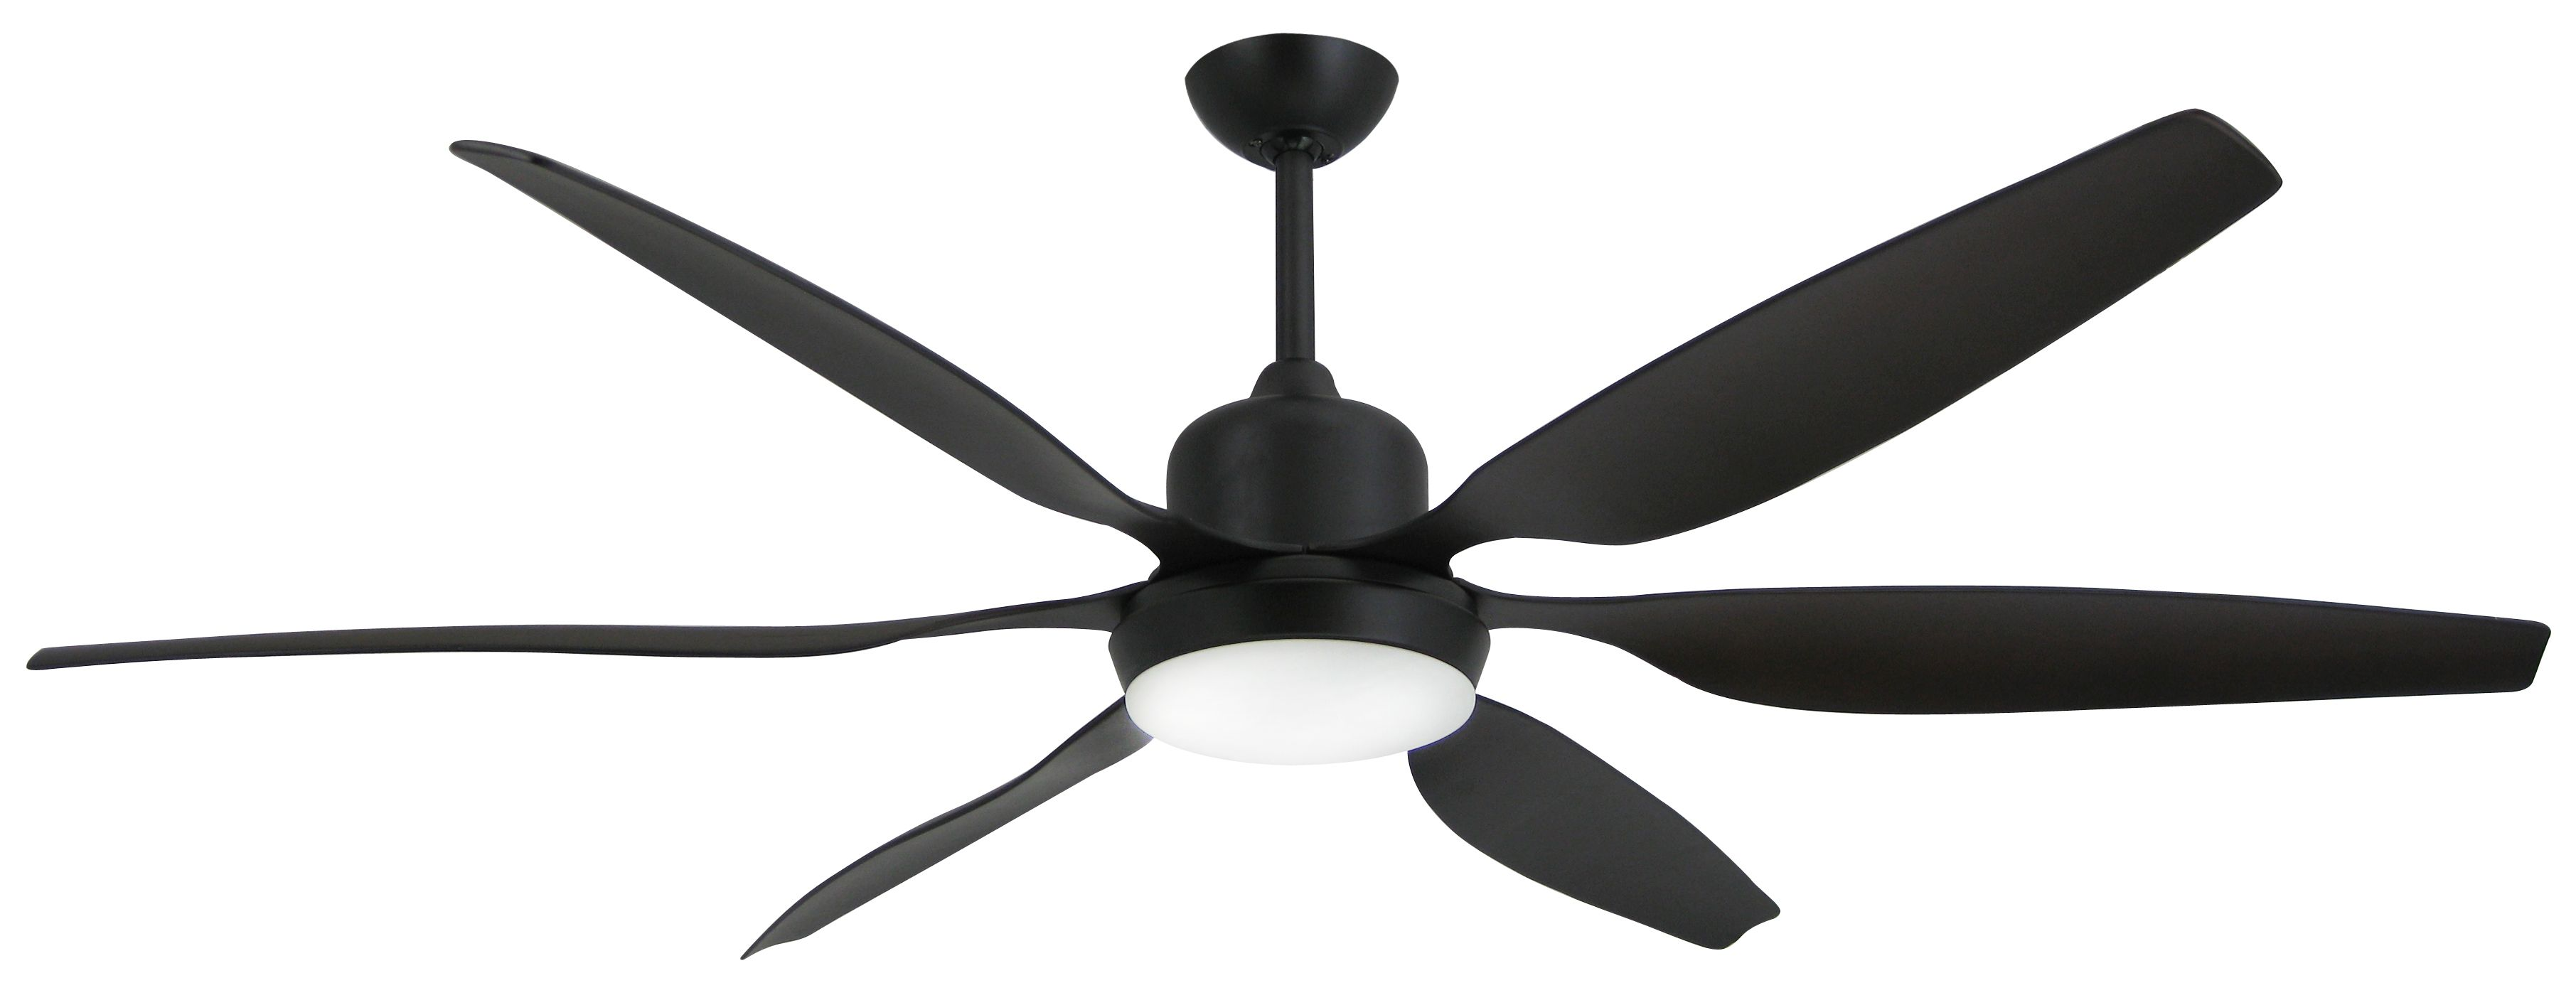 TroposAir Titan Oil Rubbed Bronze Industrial Ceiling Fan